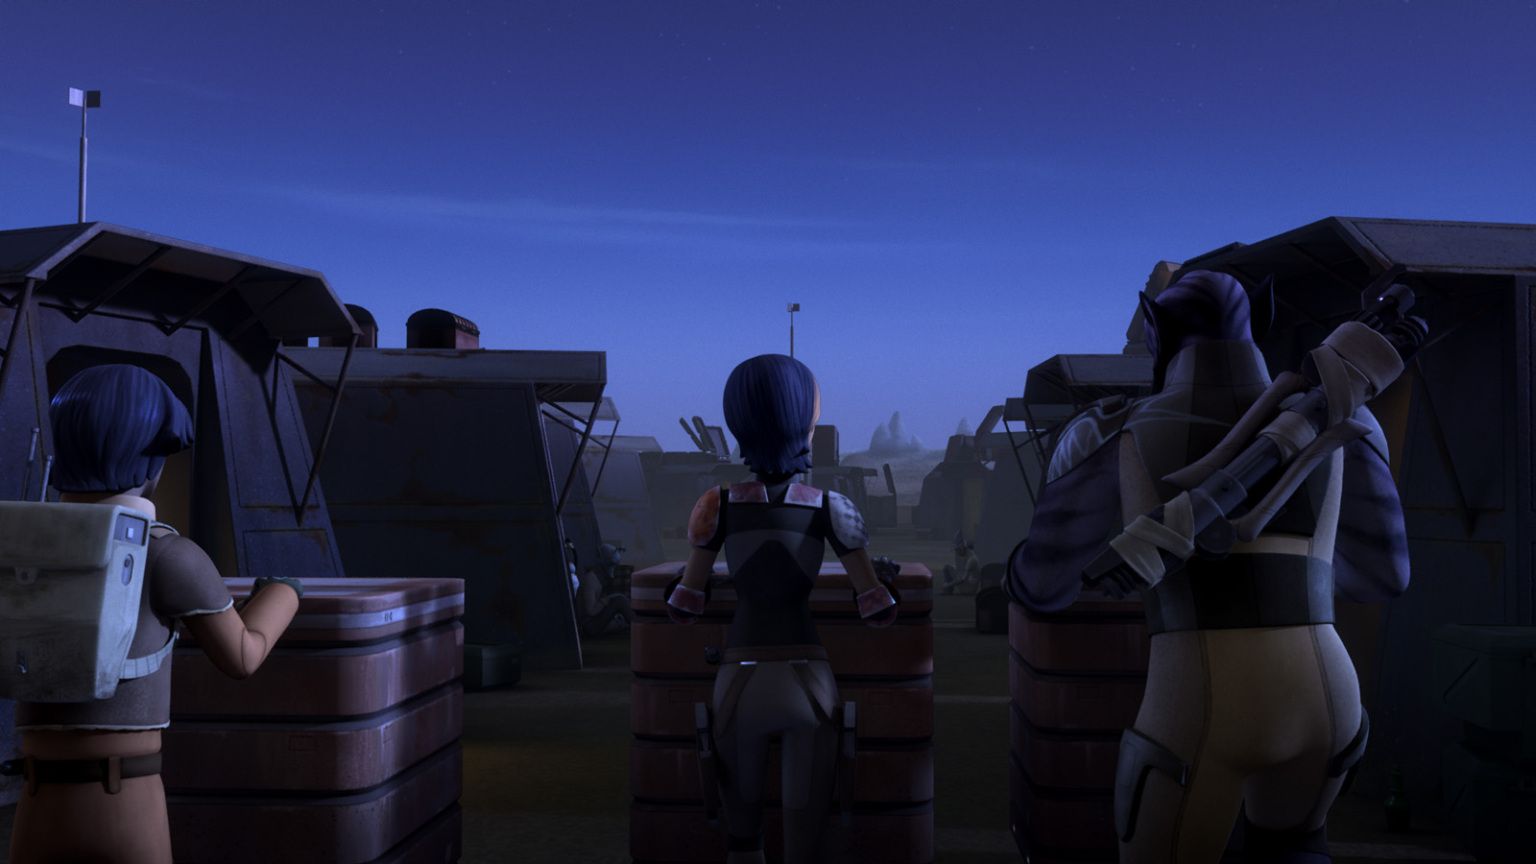 Tarkintown - Star Wars Rebels